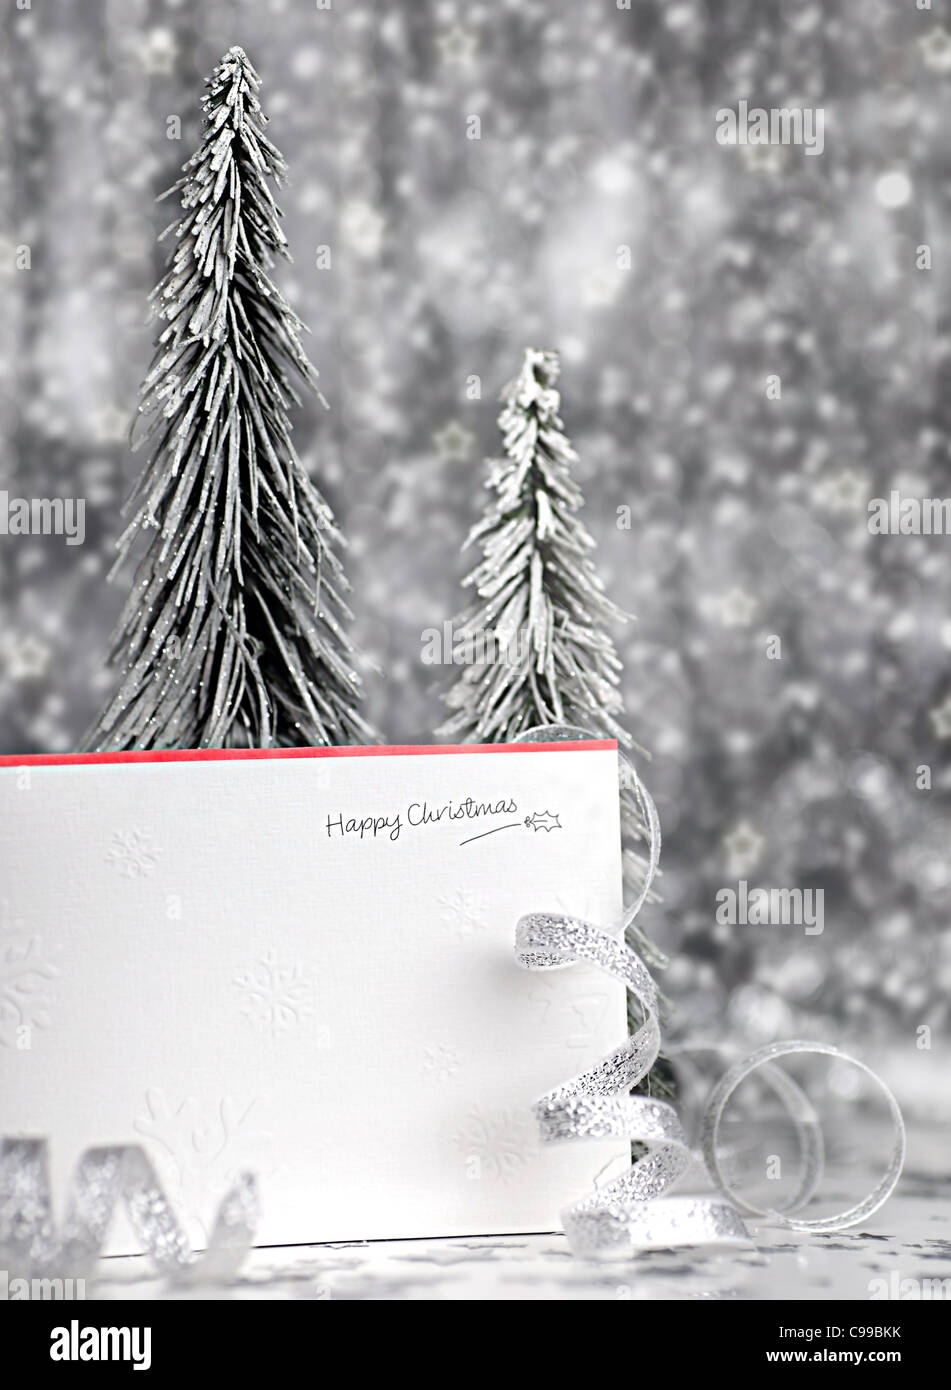 Happy holiday Christmas card background with blur lights, decoration & ornament - Stock Image